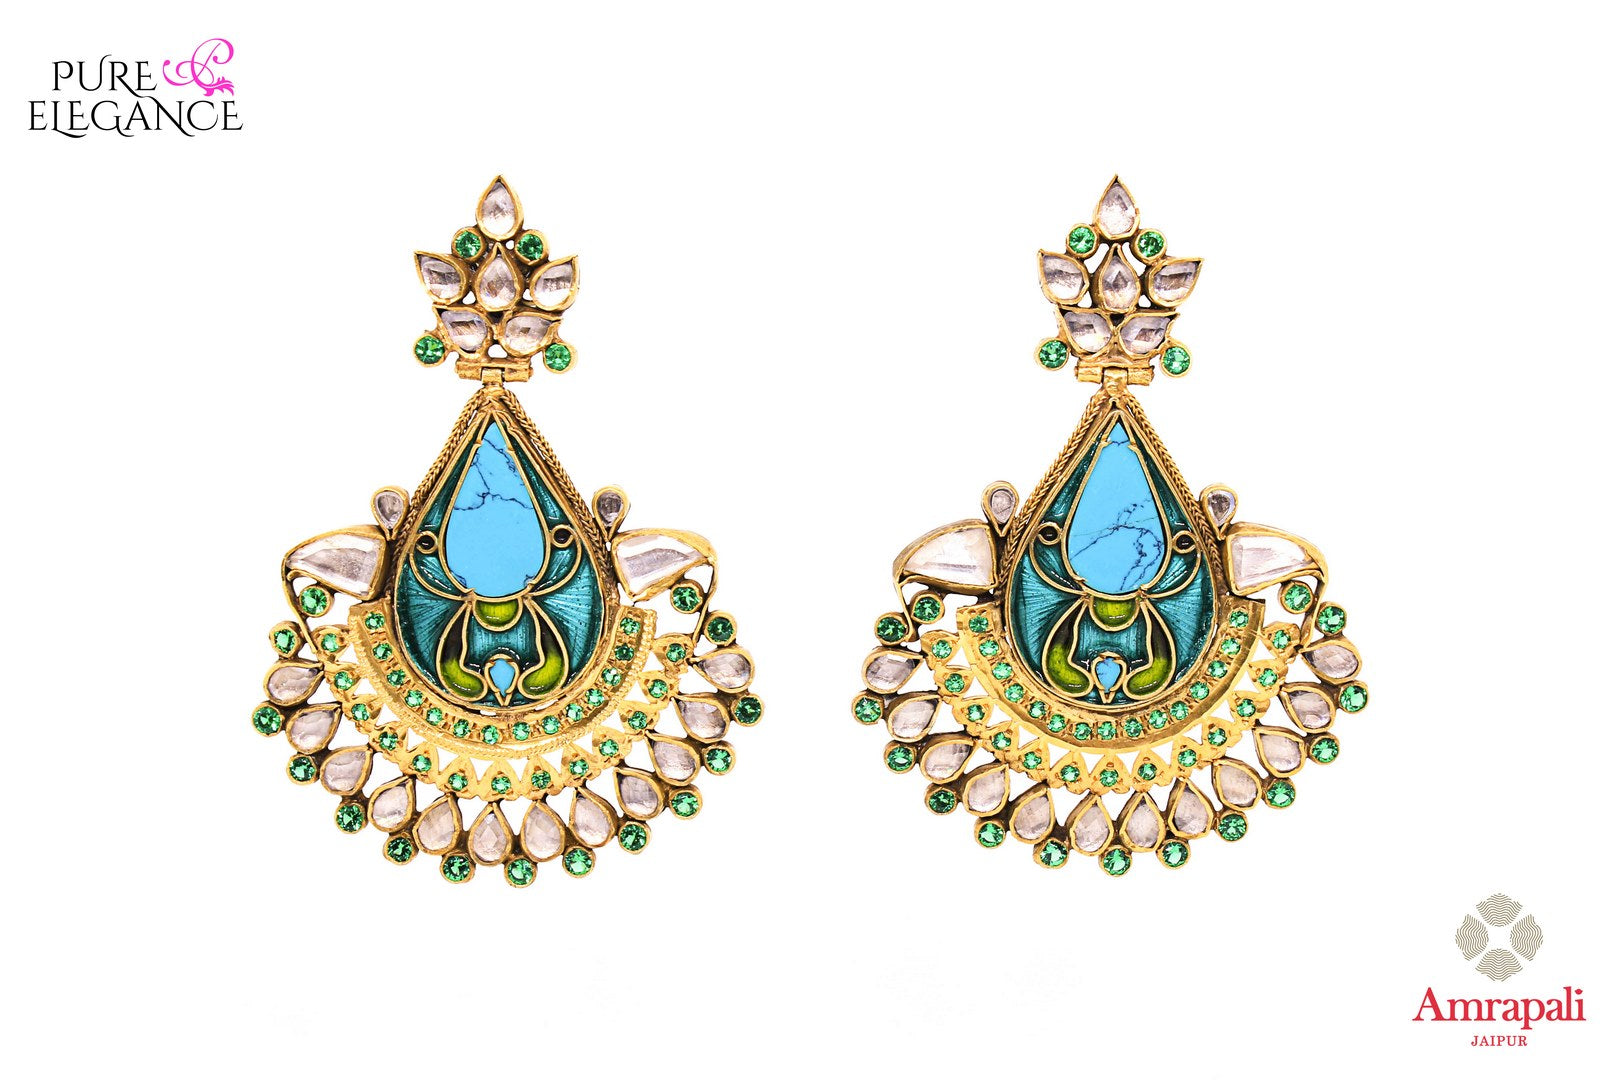 Beautiful silver gold plated enamel glass earrings buy online in USA from Amrapali. If you are looking for Indian earrings in USA, then Pure Elegance Indian fashion store is the place for you. A whole range of exquisite of ethnic Indian wedding jewelry is waiting for you on our shelves, you can also opt to shop online.-front view